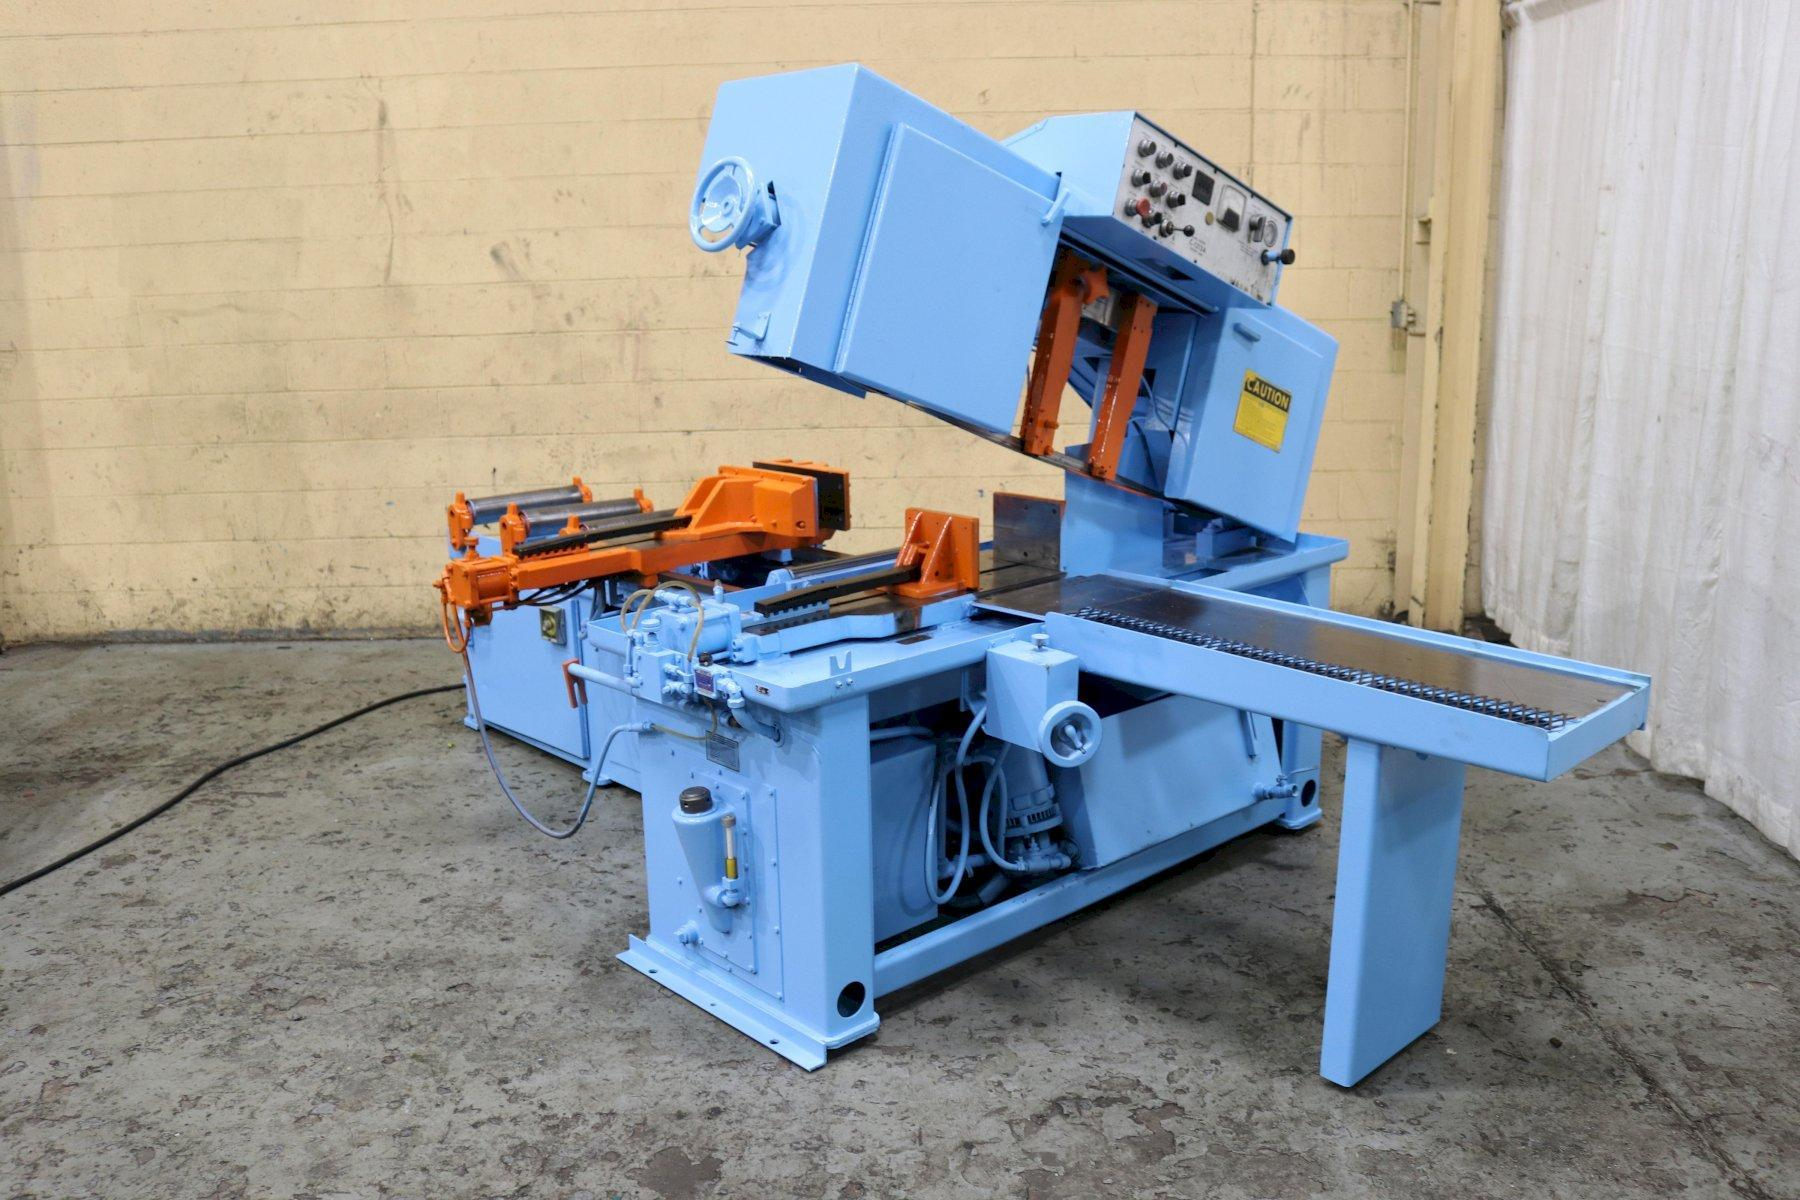 12' X 12' DOALL MODEL #C1212A HORIZONTAL BANDSAW: STOCK #72377